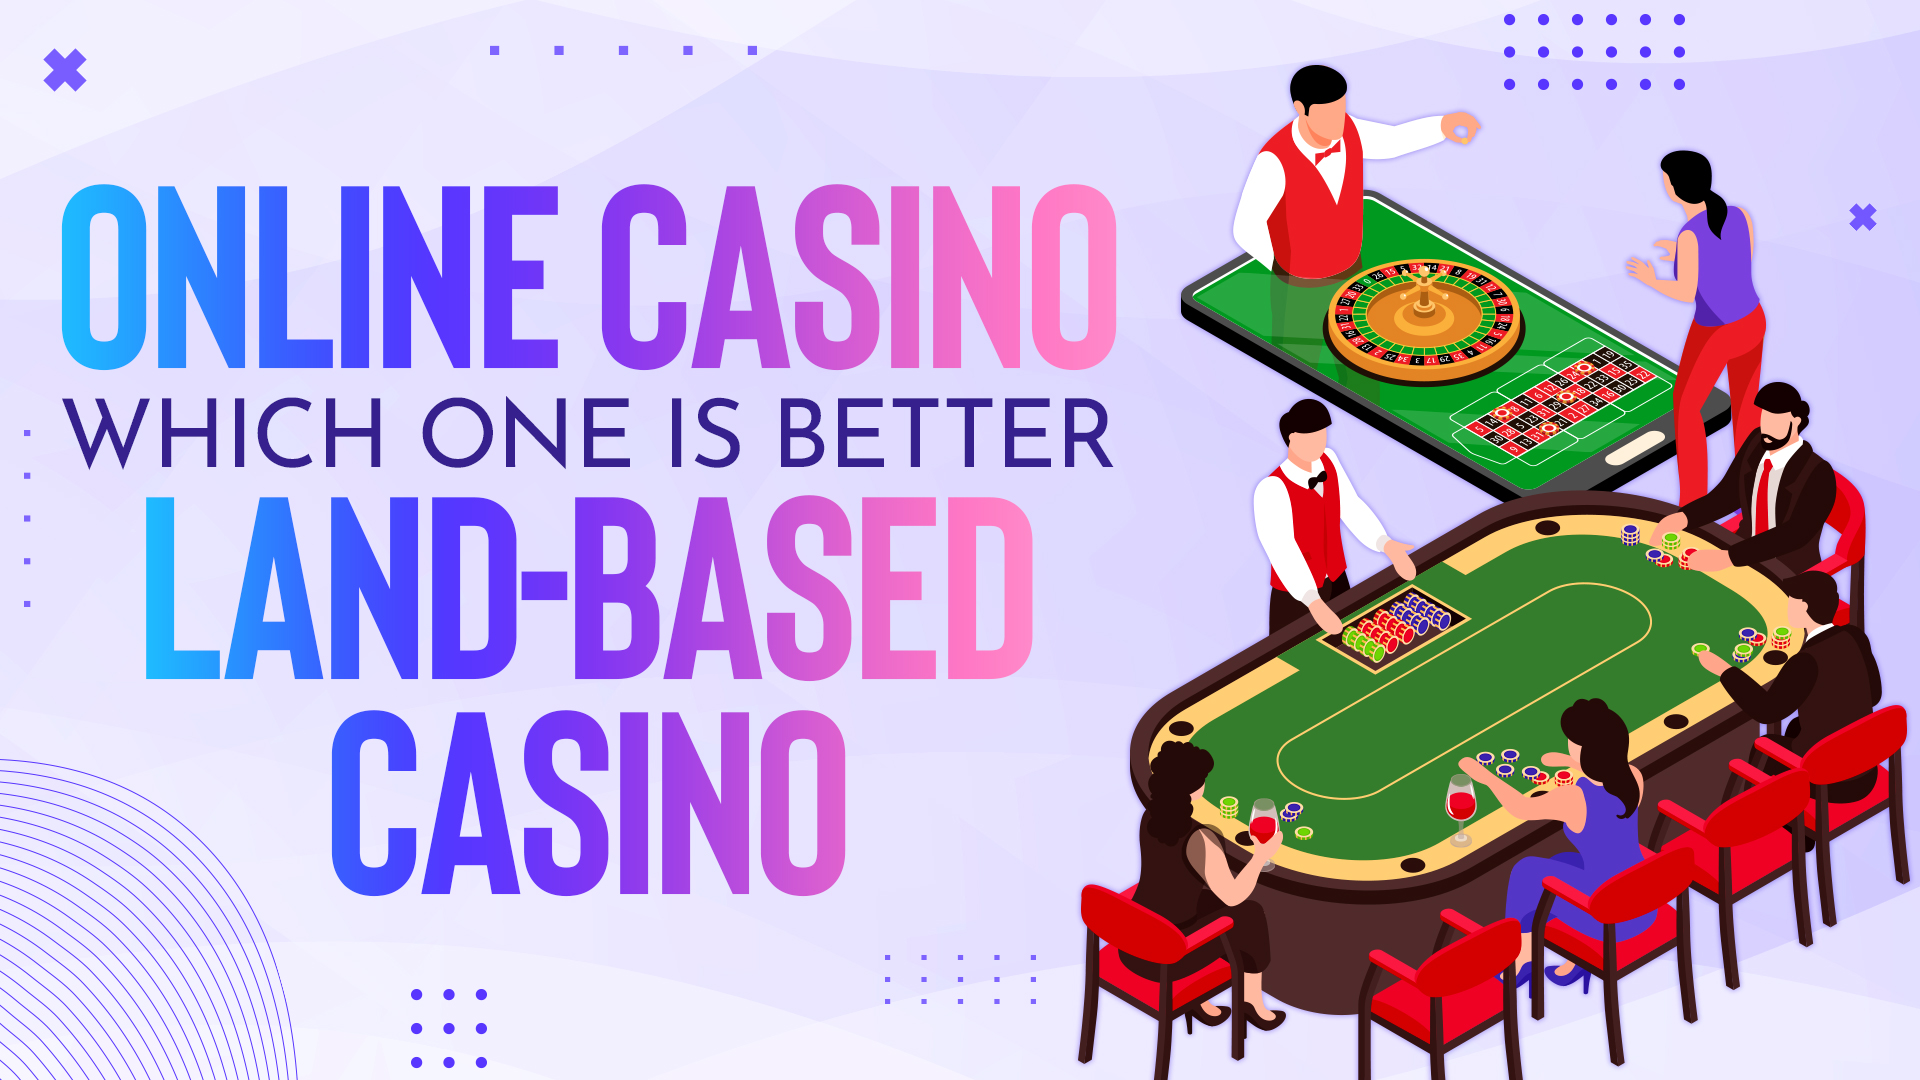 Online Casino VS Land-Based Casino: Which one is better?